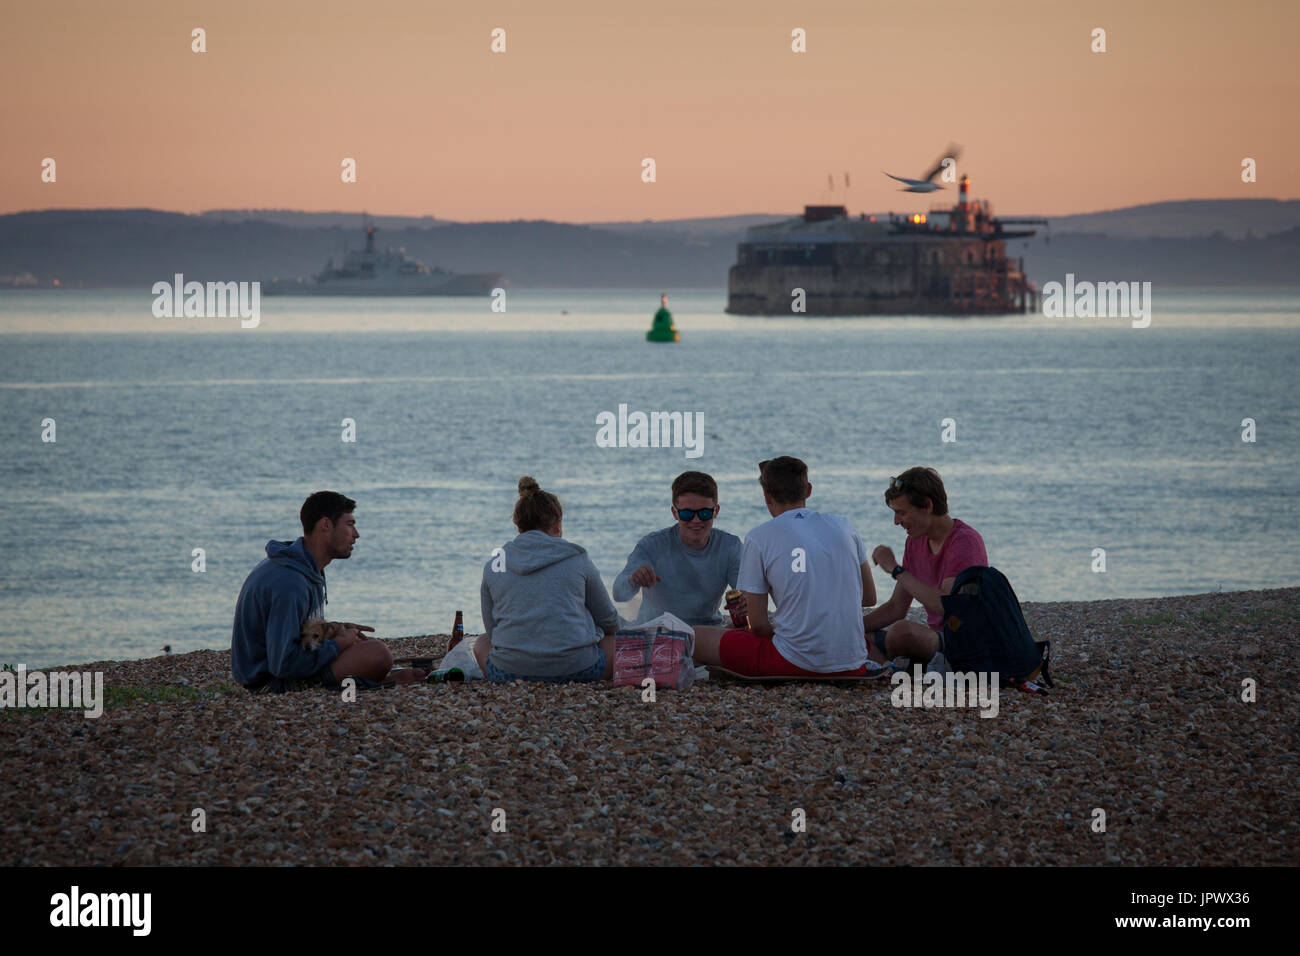 A group of young adults outdoors socialising and enjoying drinks and a barbecue on the beach in Southsea, Portsmouth. - Stock Image